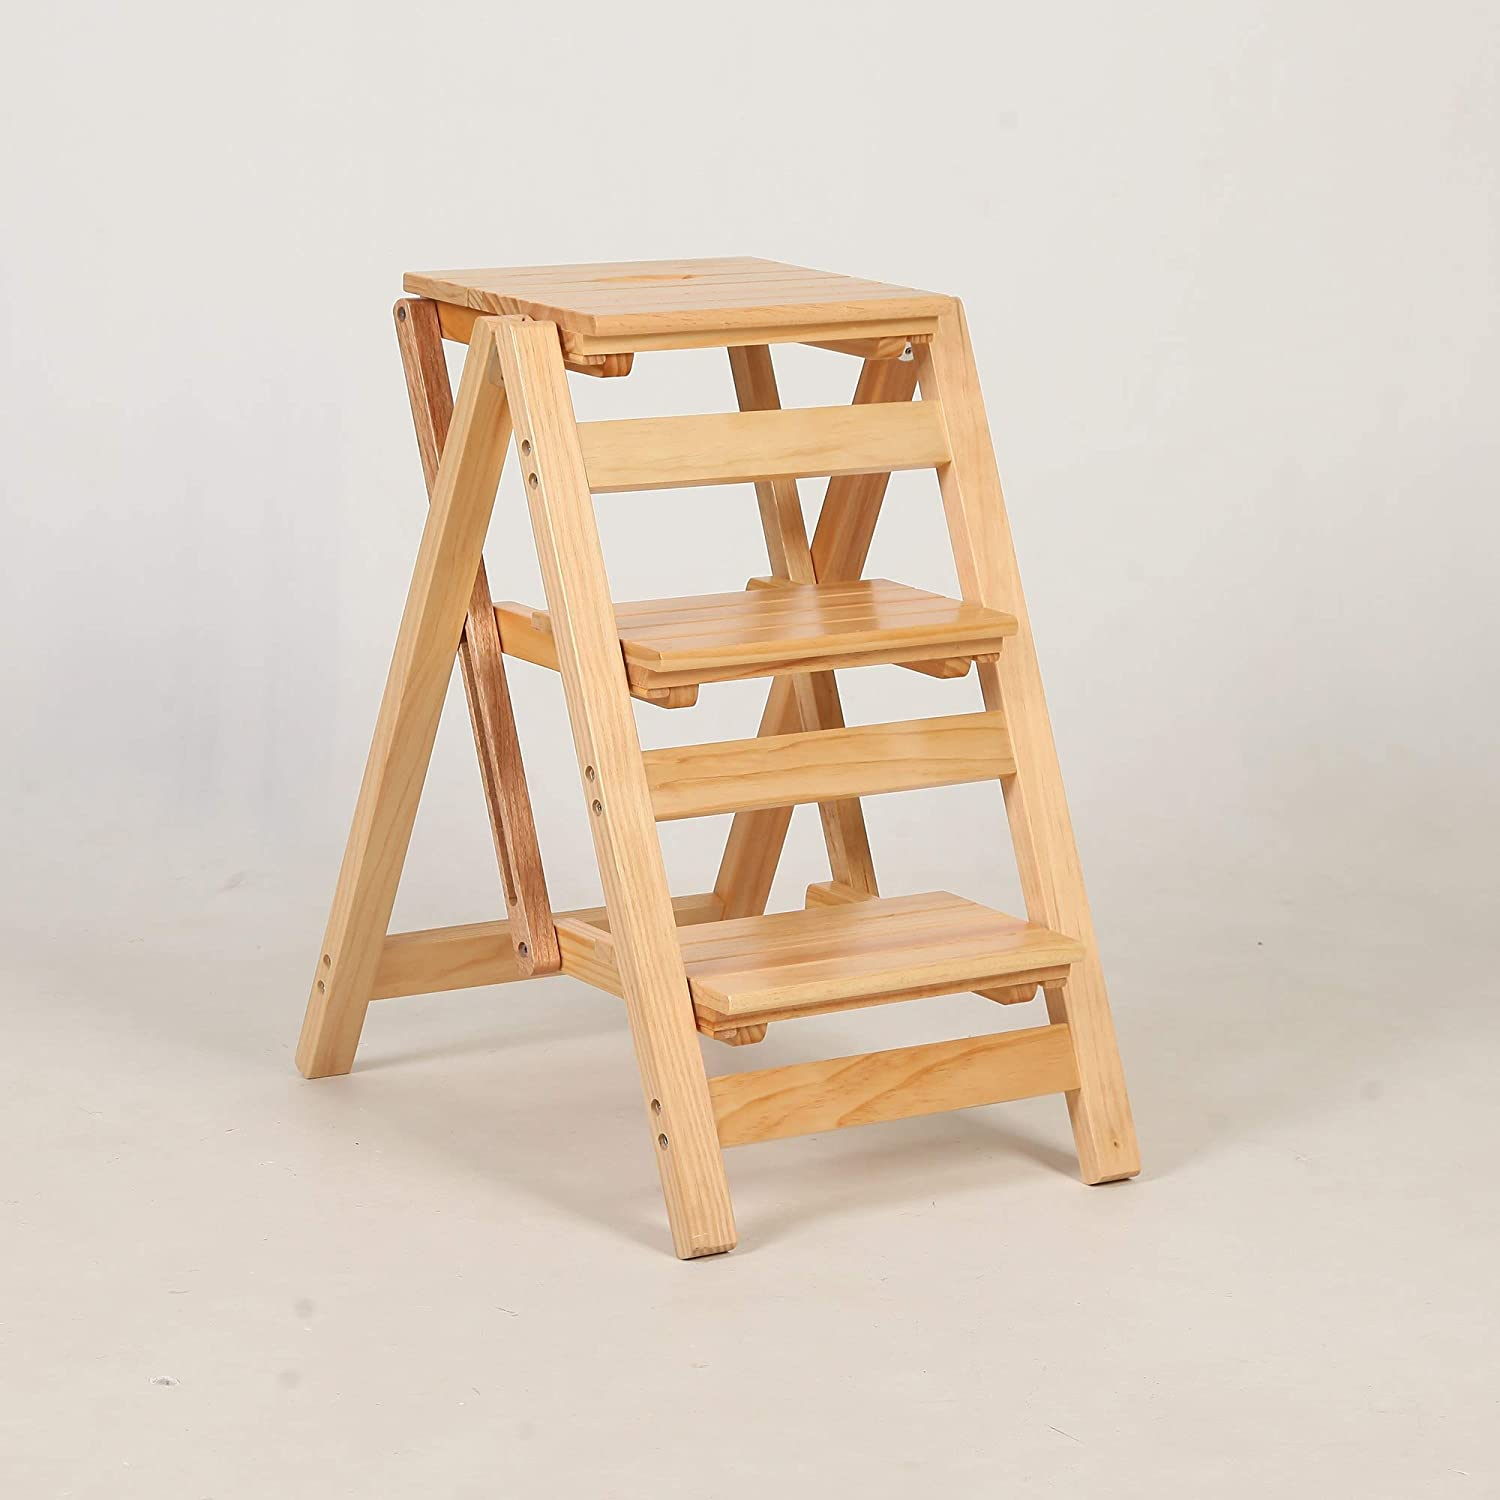 WFZCP [Alternative dealer] Folding Step Ladder Cheap mail order sales Wood Home Space Ch Dual-Purpose